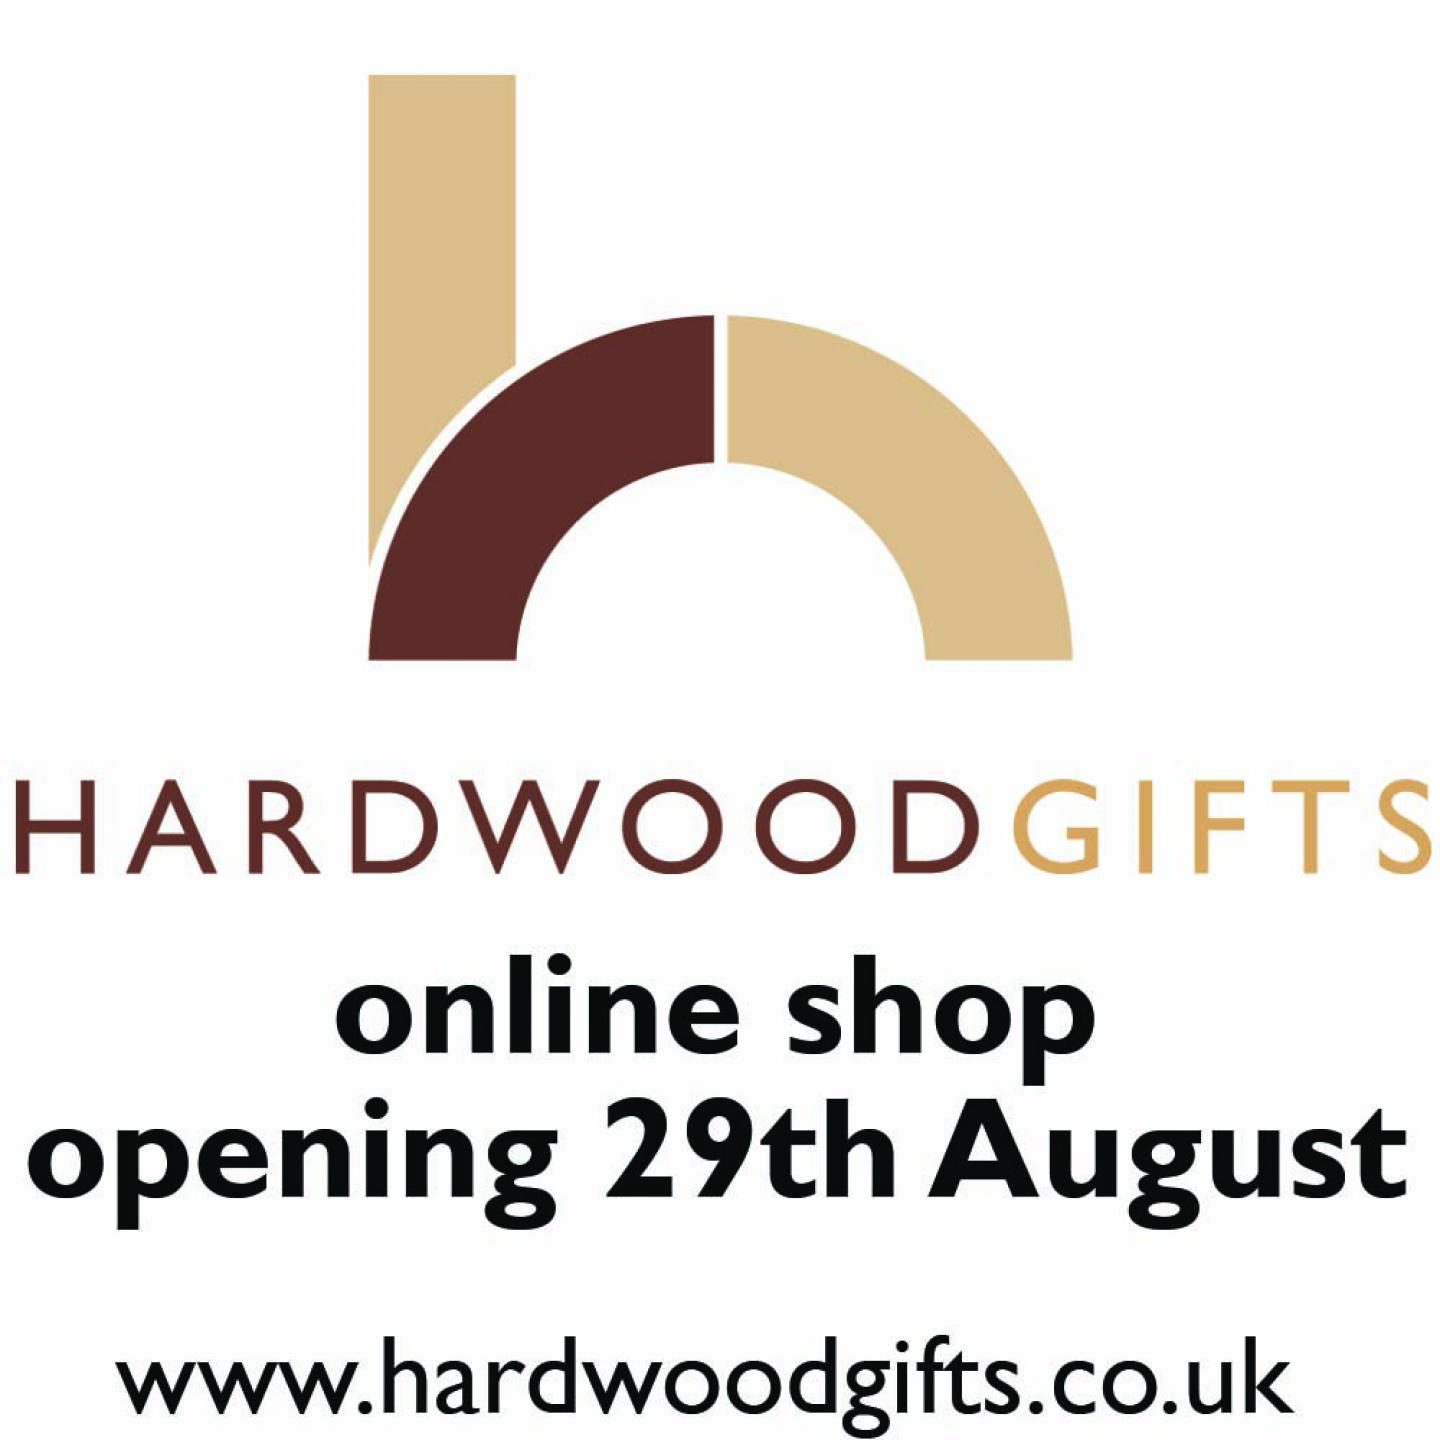 Coming soon - www.hardwoodgifts.com